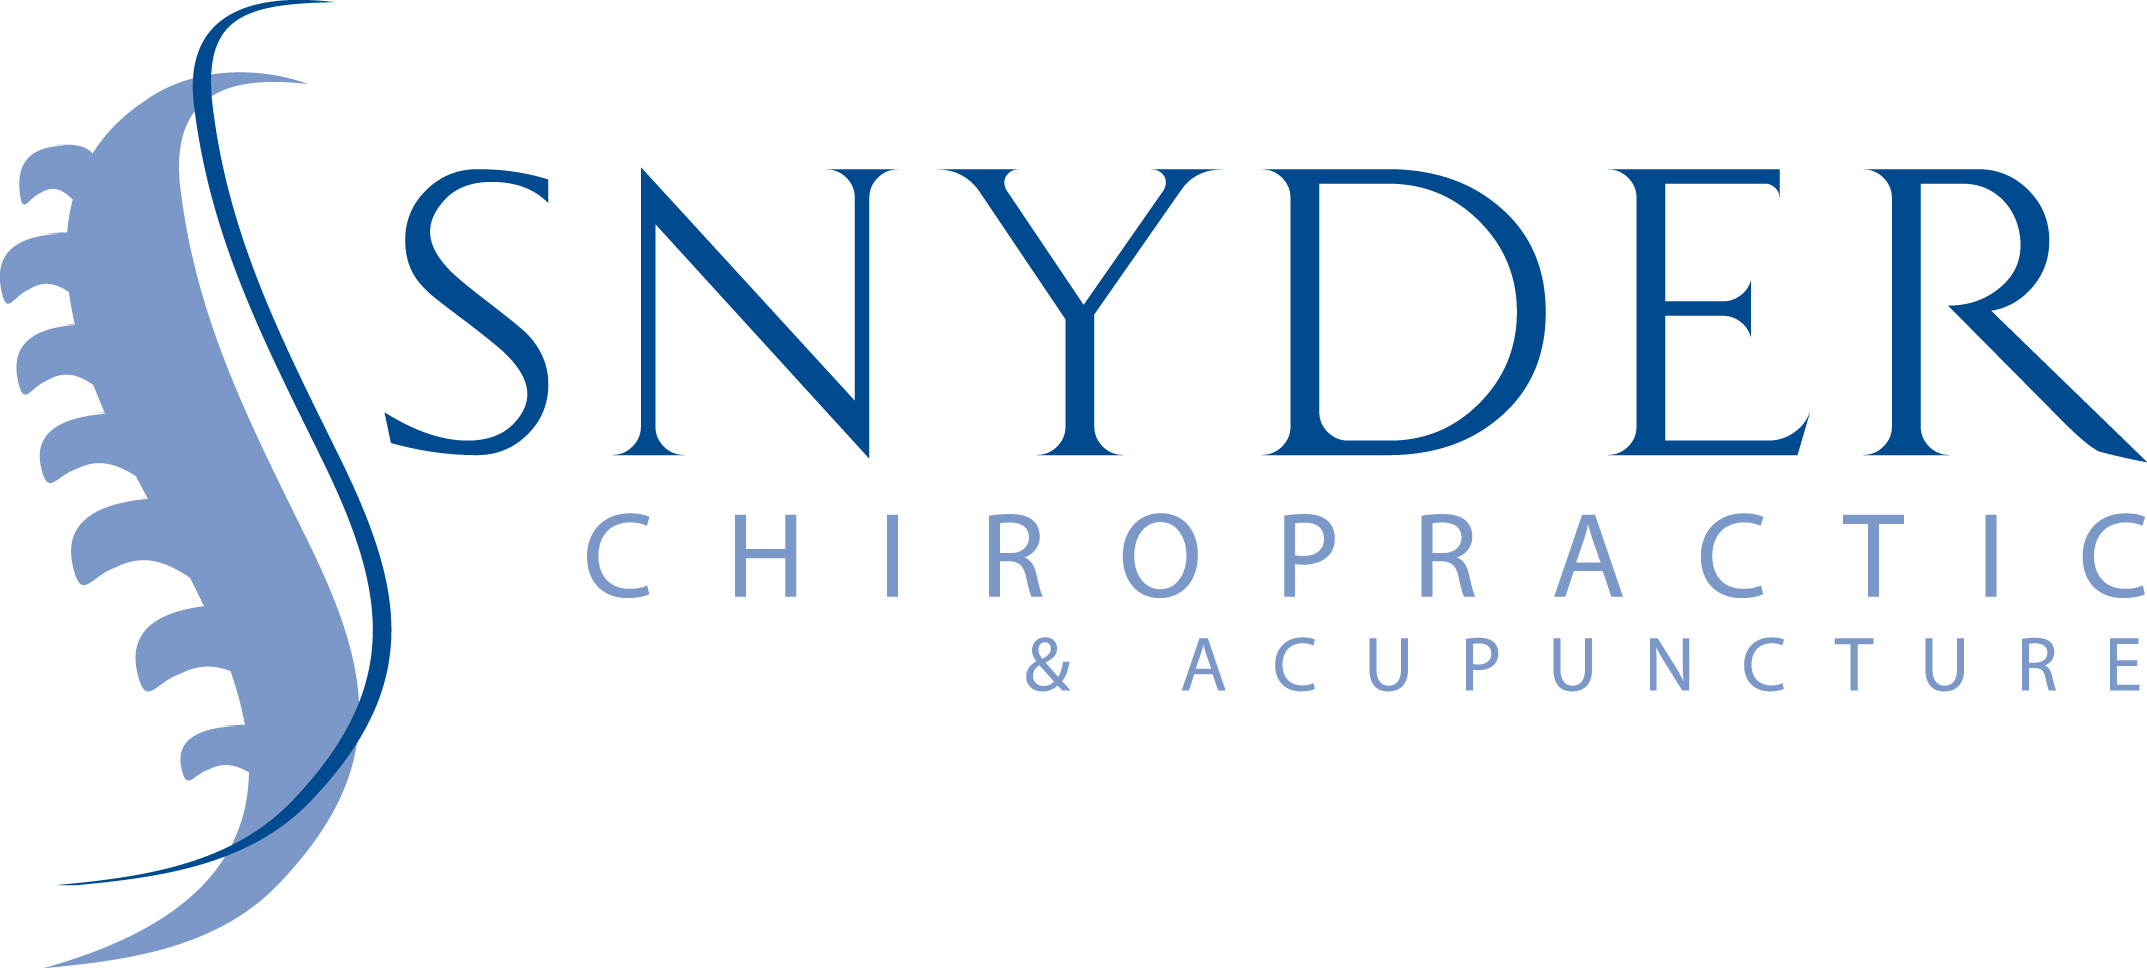 Snyder Chiropractic & Acupuncture